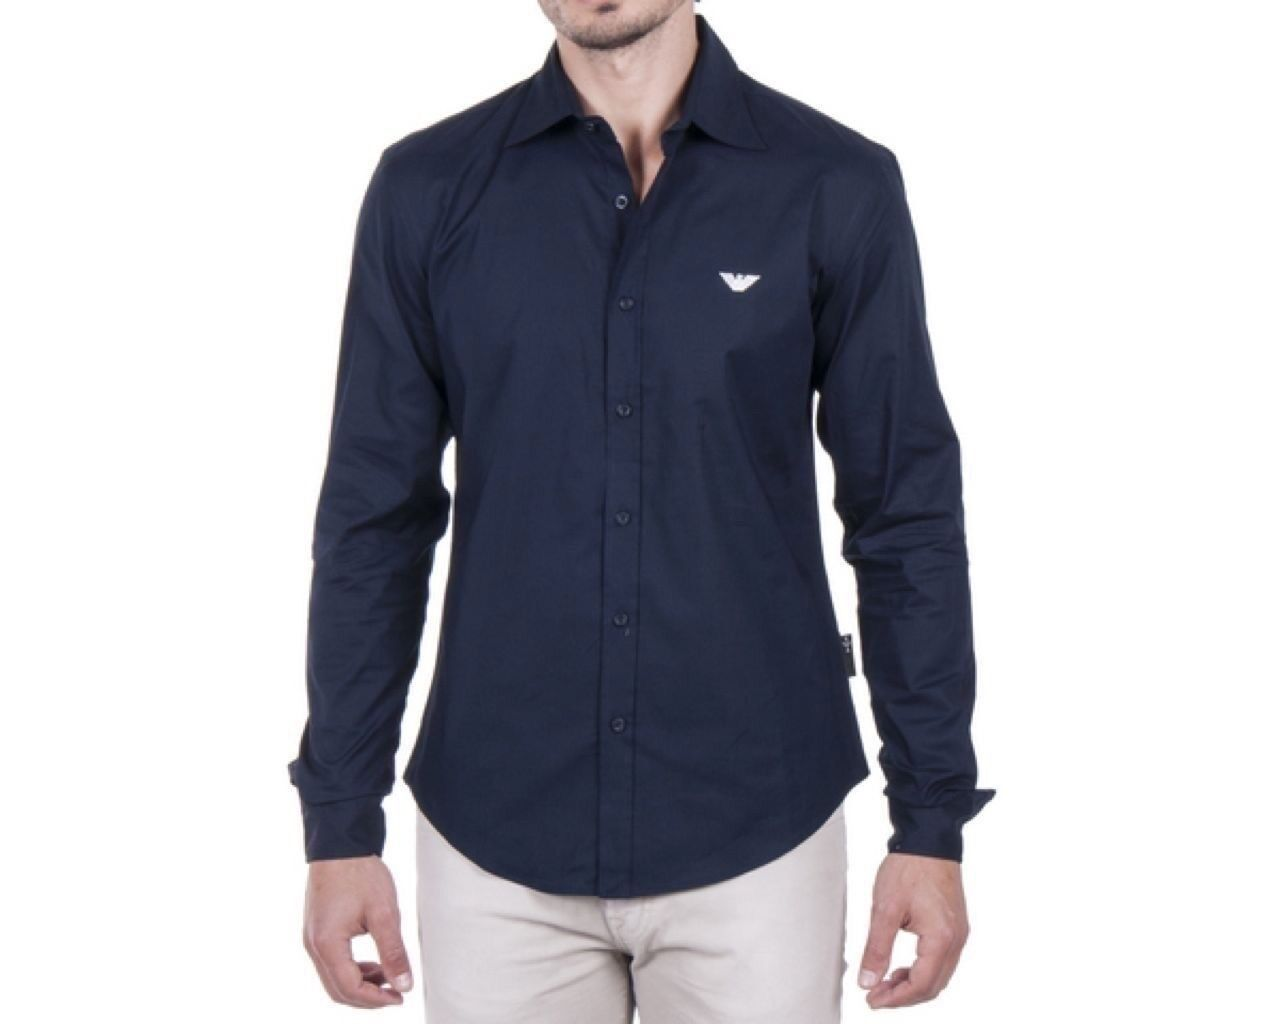 Mens Emporio Armani Jeans Navy bluee Casual Slim Shirt Size M